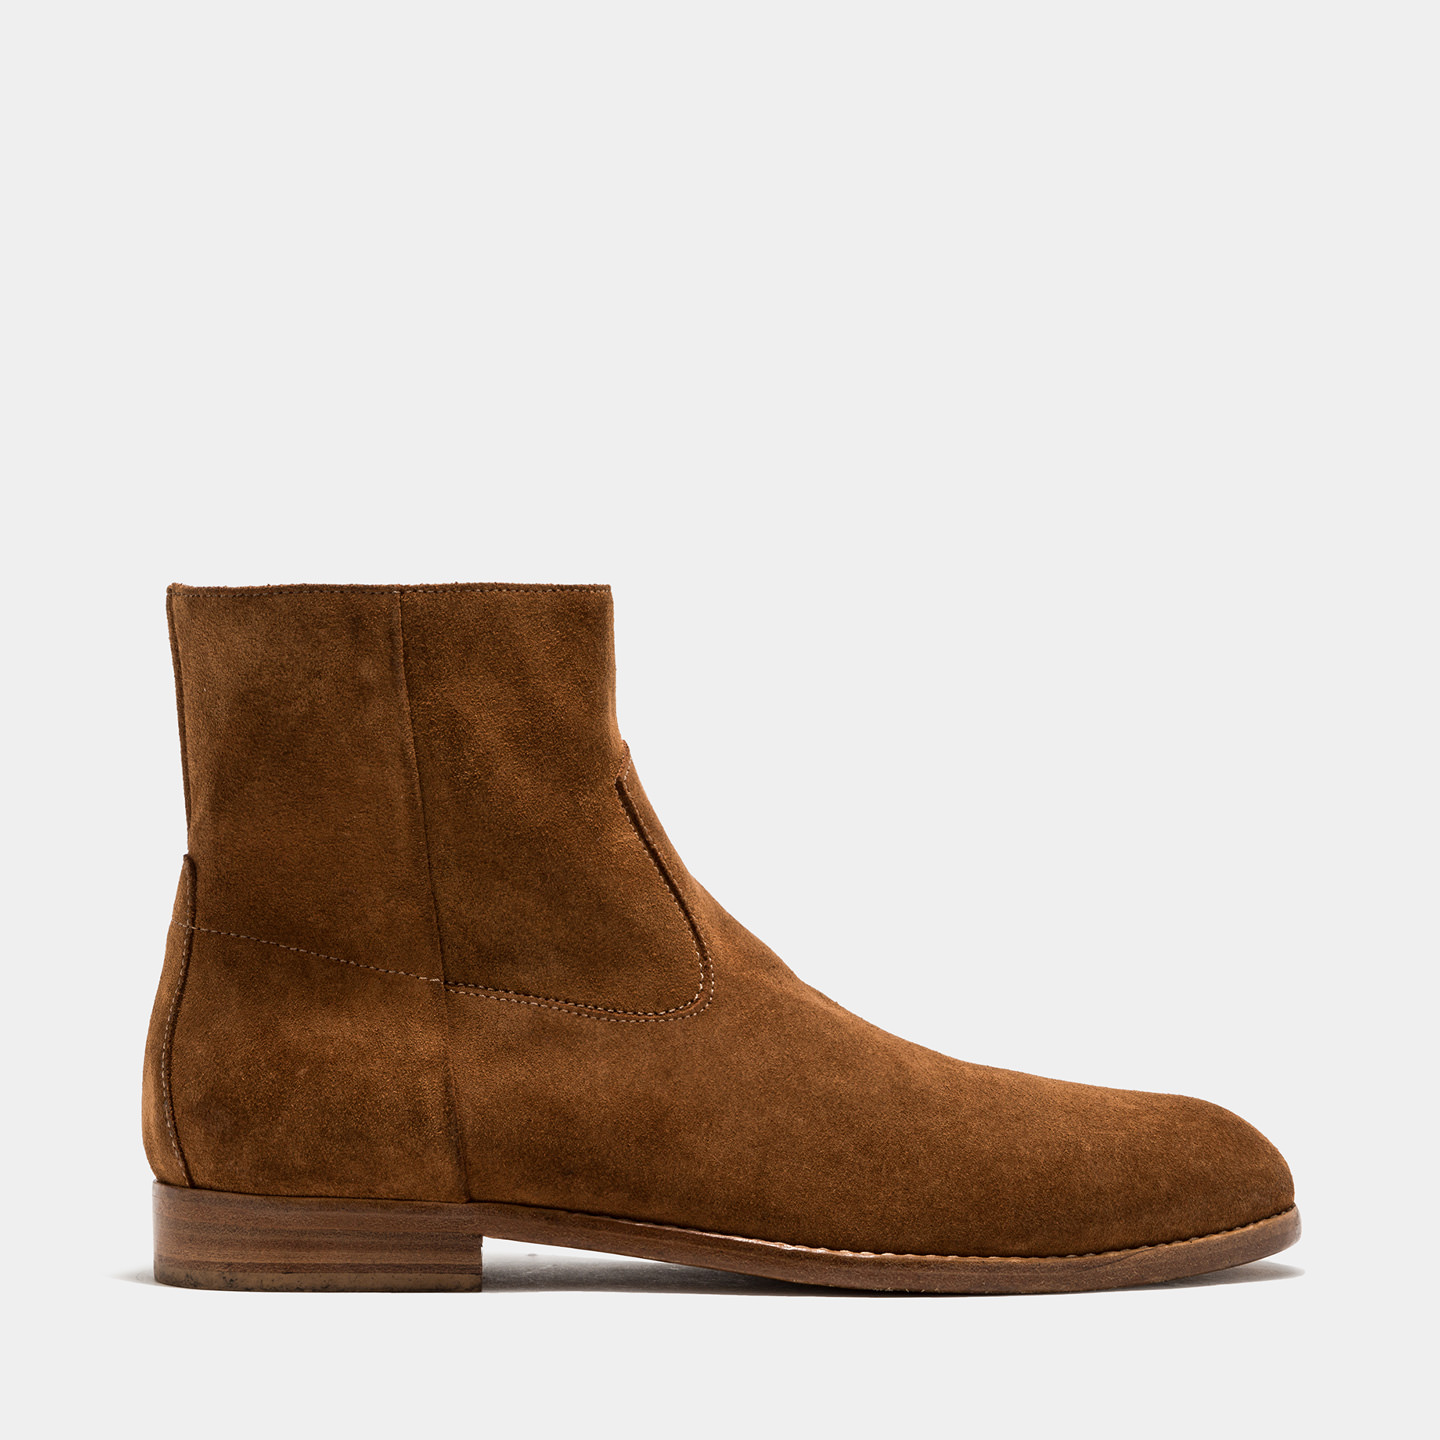 BUTTERO: FLOYD ANKLE BOOTS IN LIGHT BROWN SUEDE